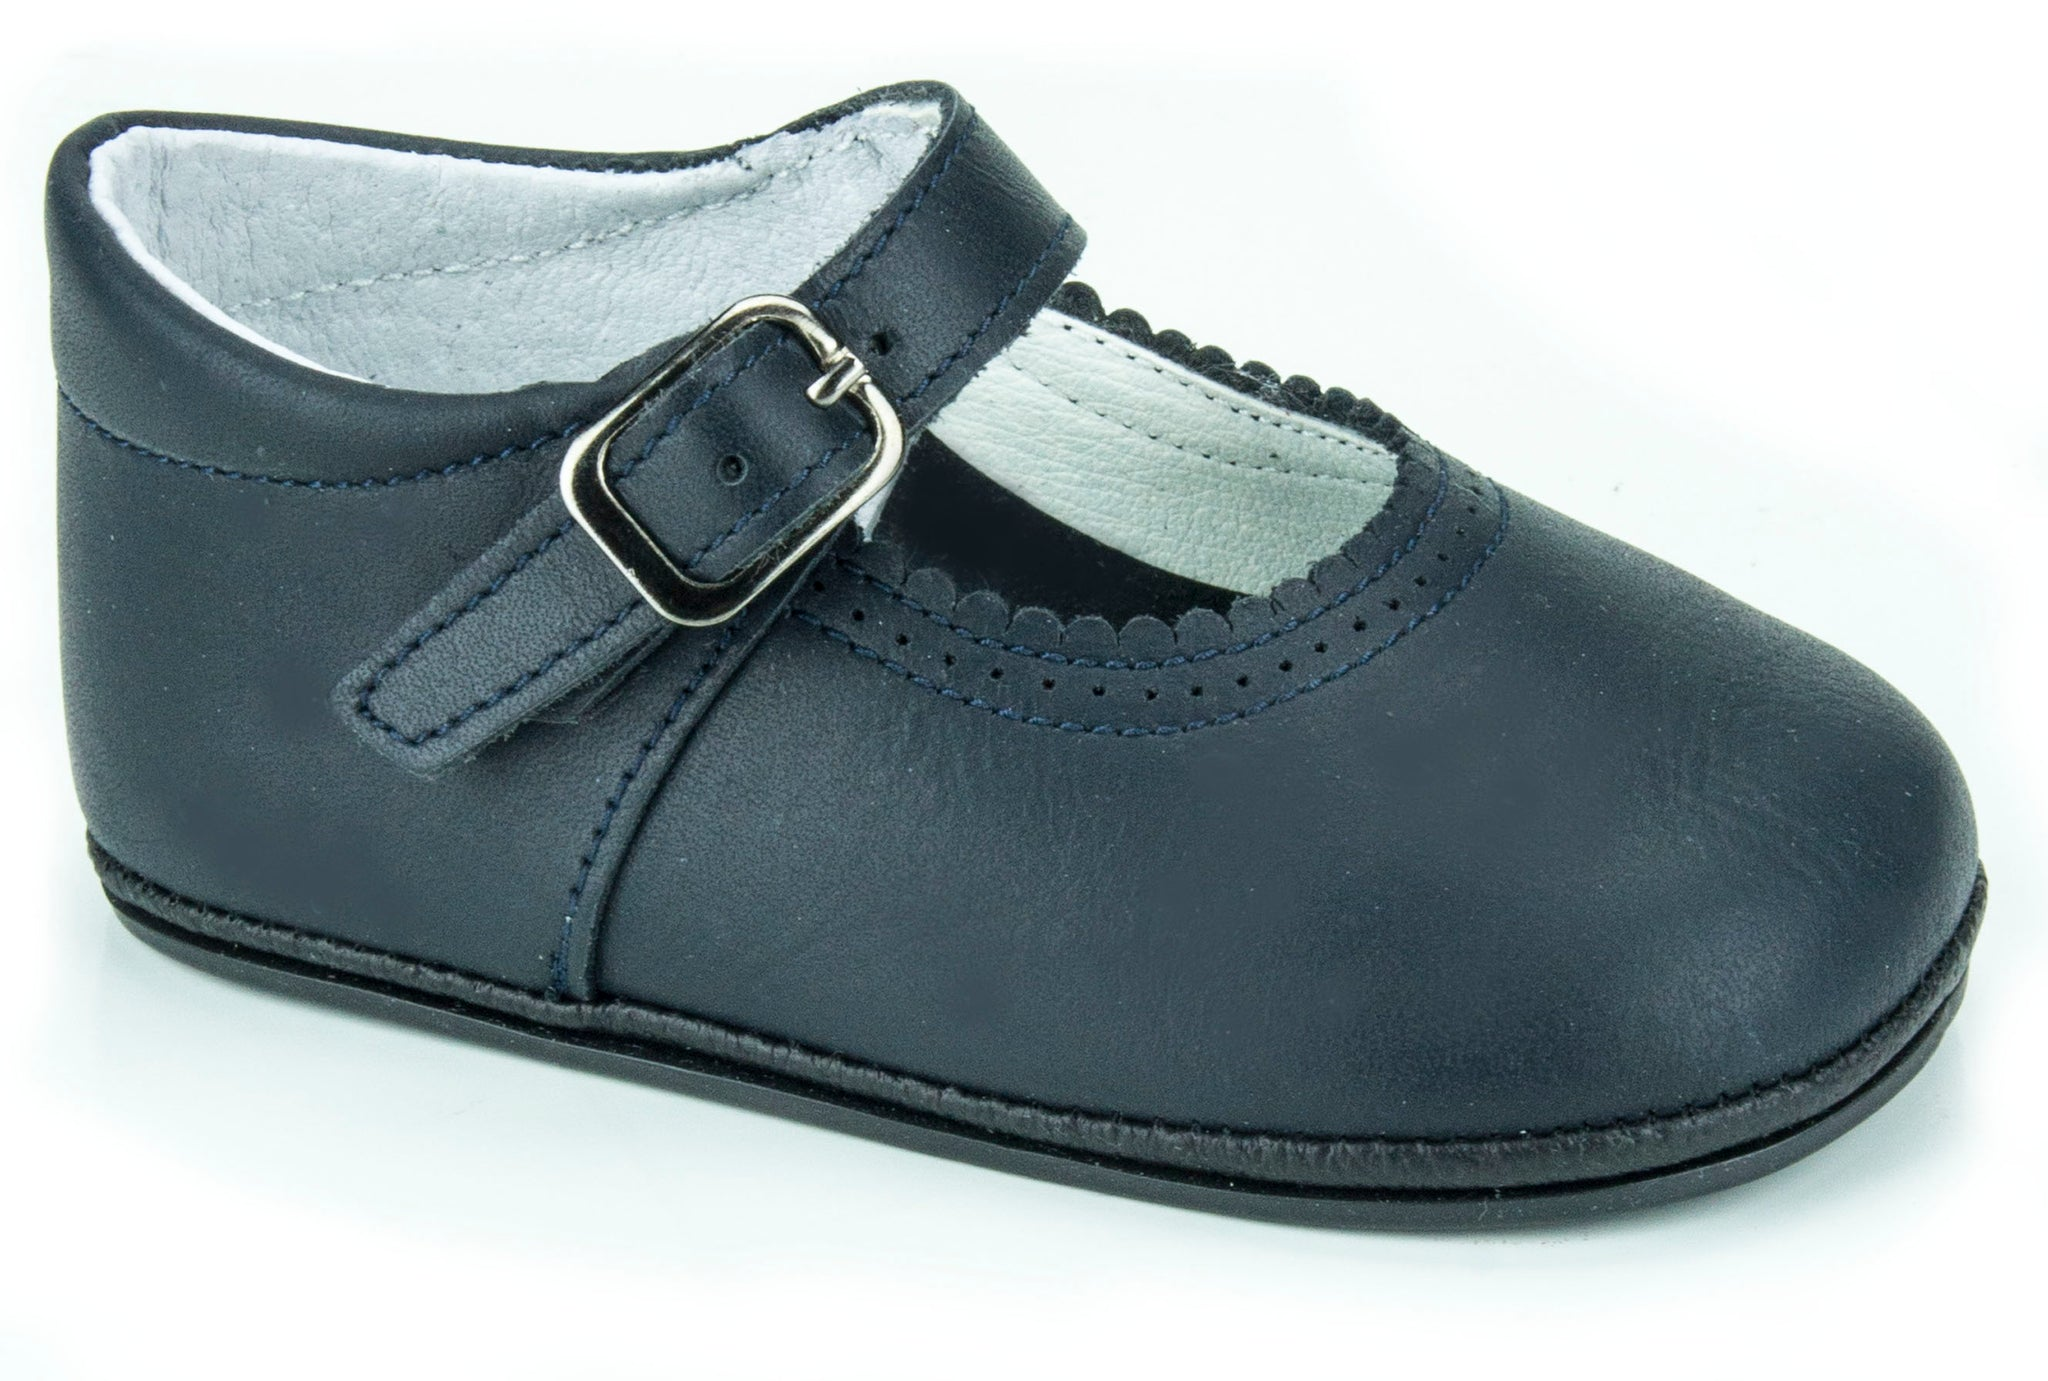 Patucos Soft Leather Mary Janes Navy Shoes for girls